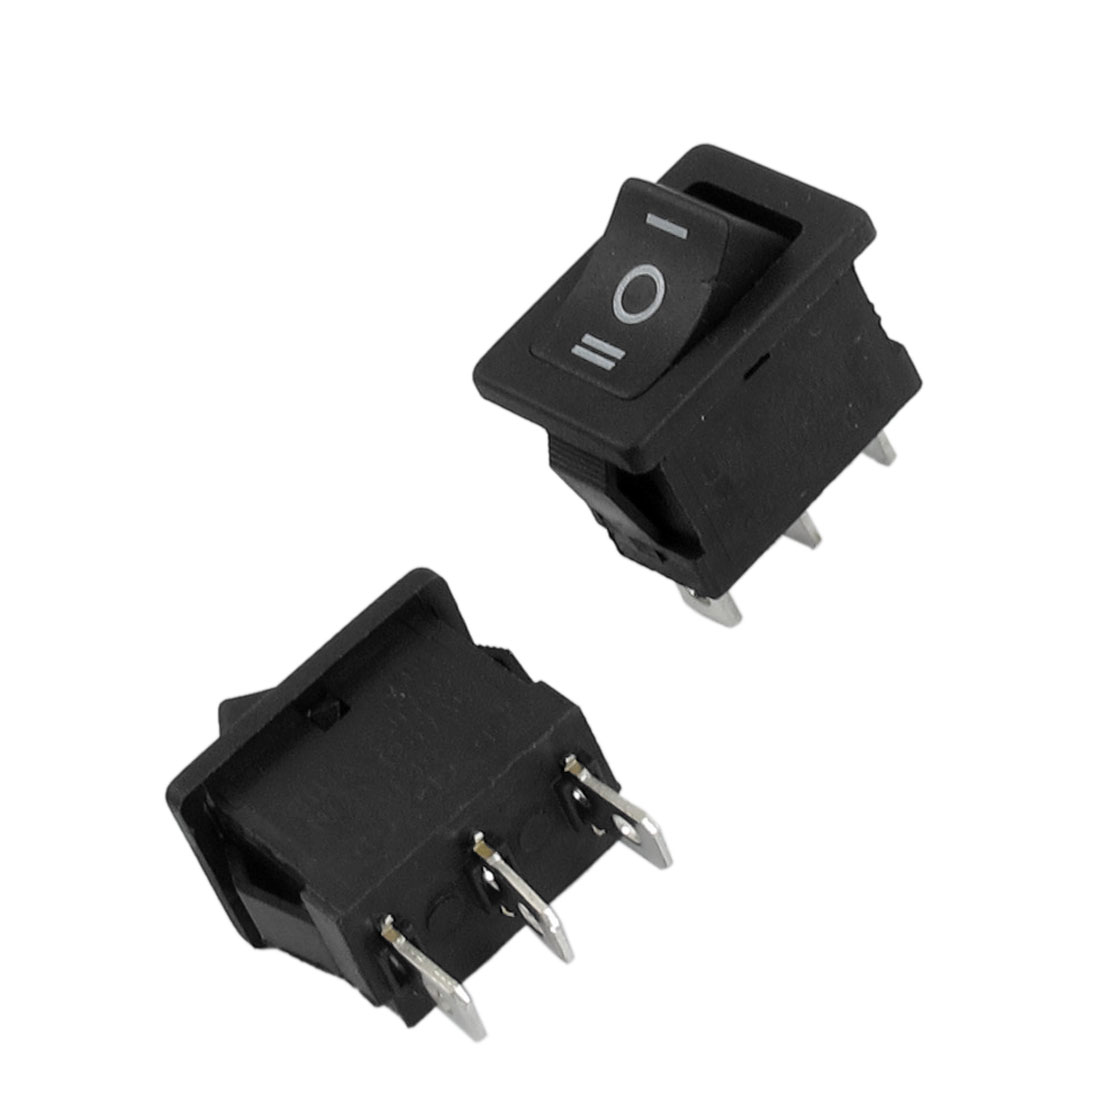 2 Pcs SPDT ON-OFF-ON Snap in Rocker Boat Switch AC 250V 6A/1A AC 125V 10A